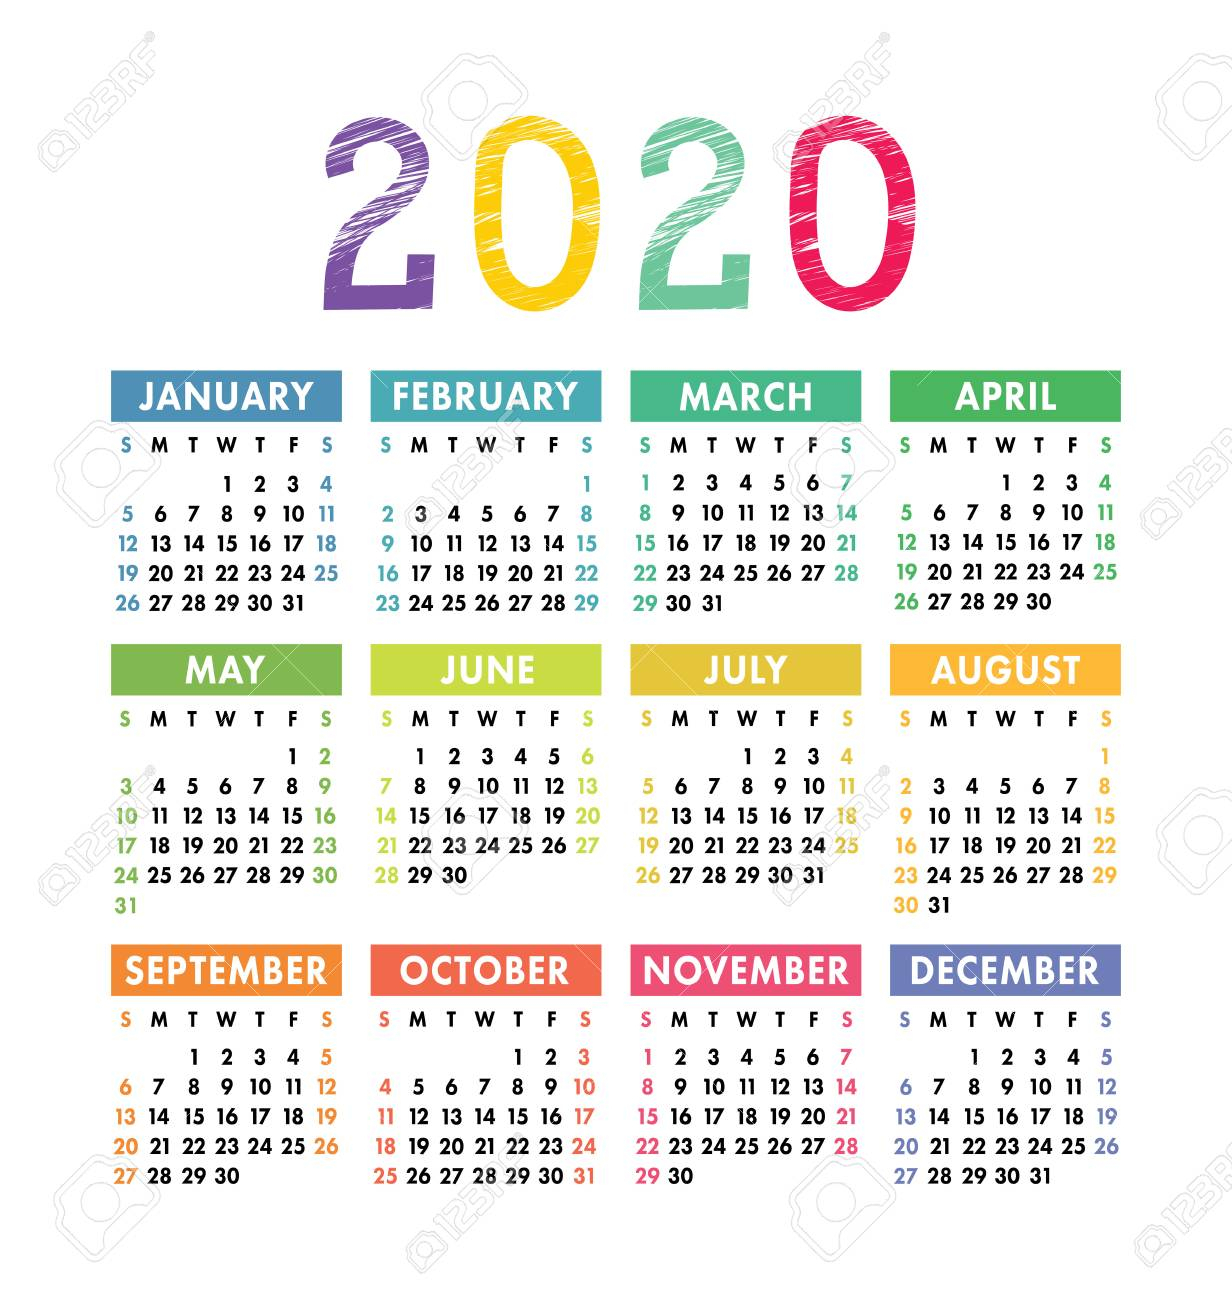 Printable Pocket Calendar 2020 - Wpa.wpart.co inside Printable 2020 Pocket Calendar